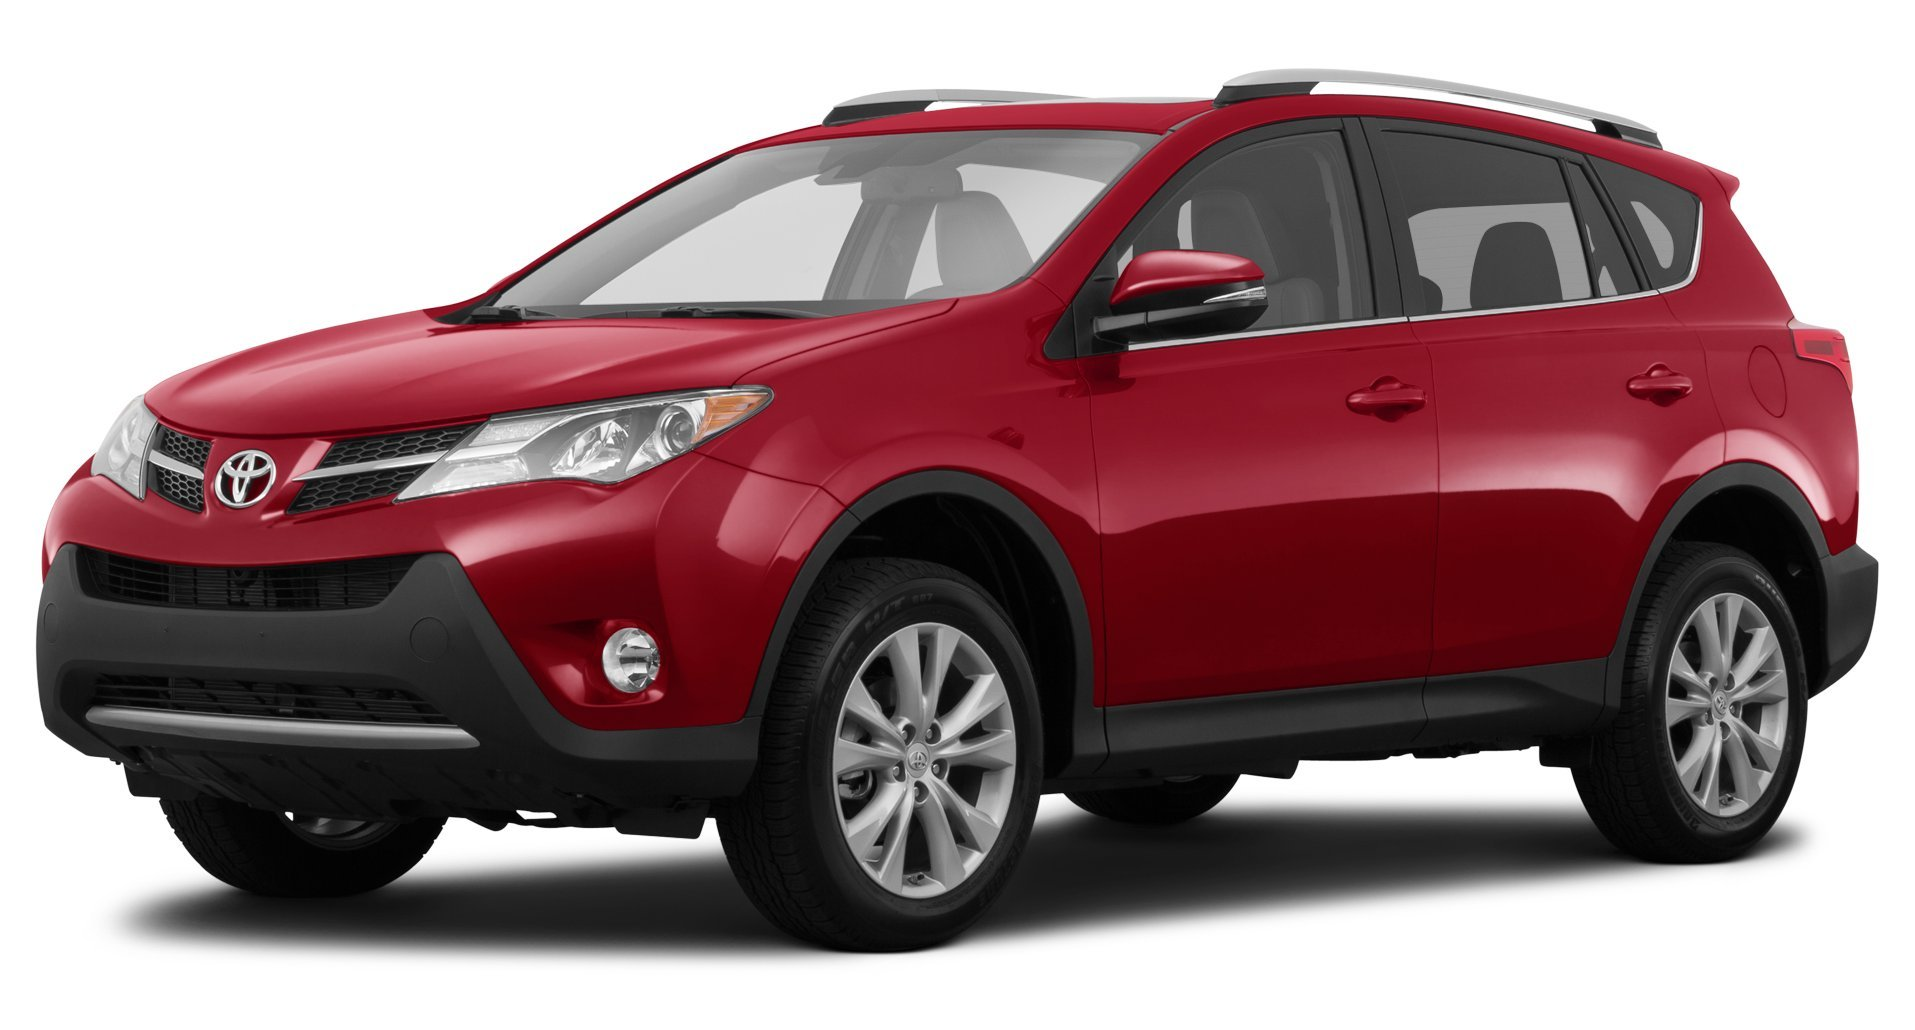 2015 toyota rav4 reviews images and specs vehicles. Black Bedroom Furniture Sets. Home Design Ideas